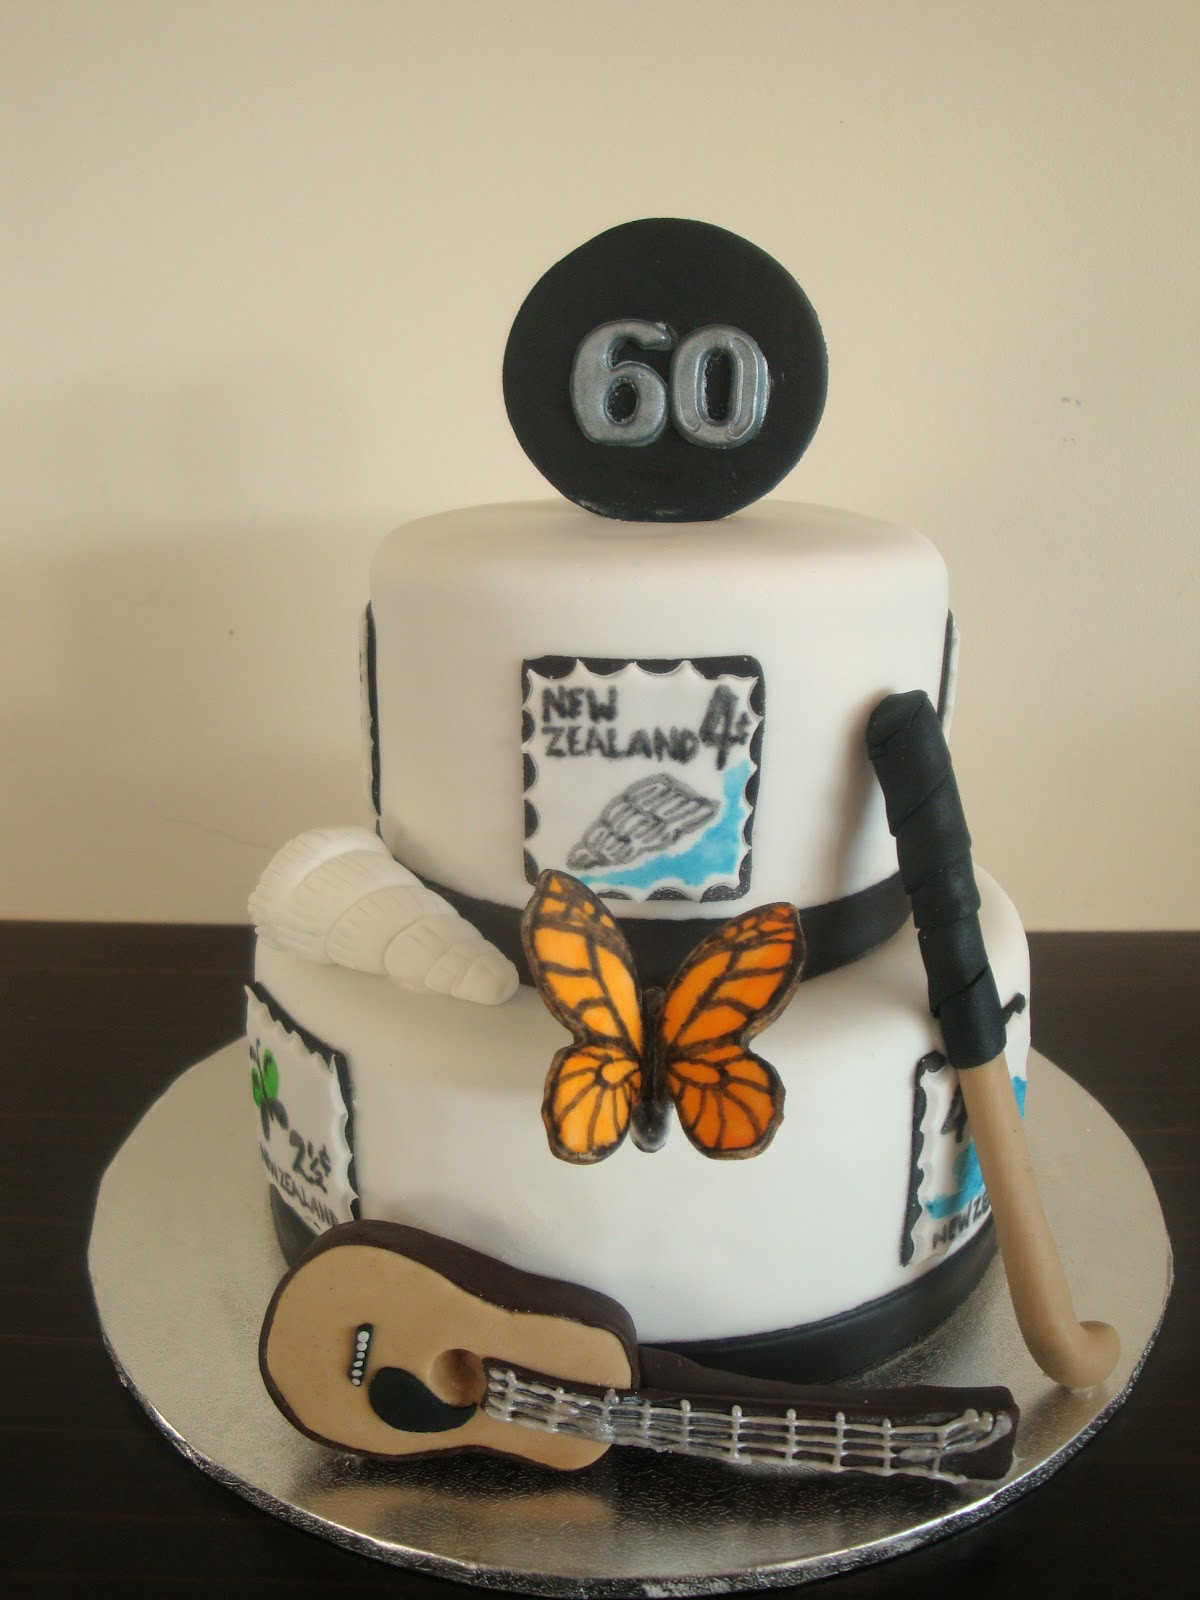 Best ideas about Birthday Cake Designs For Him . Save or Pin Mrs Woolley s Cakes 60th birthday cake Now.